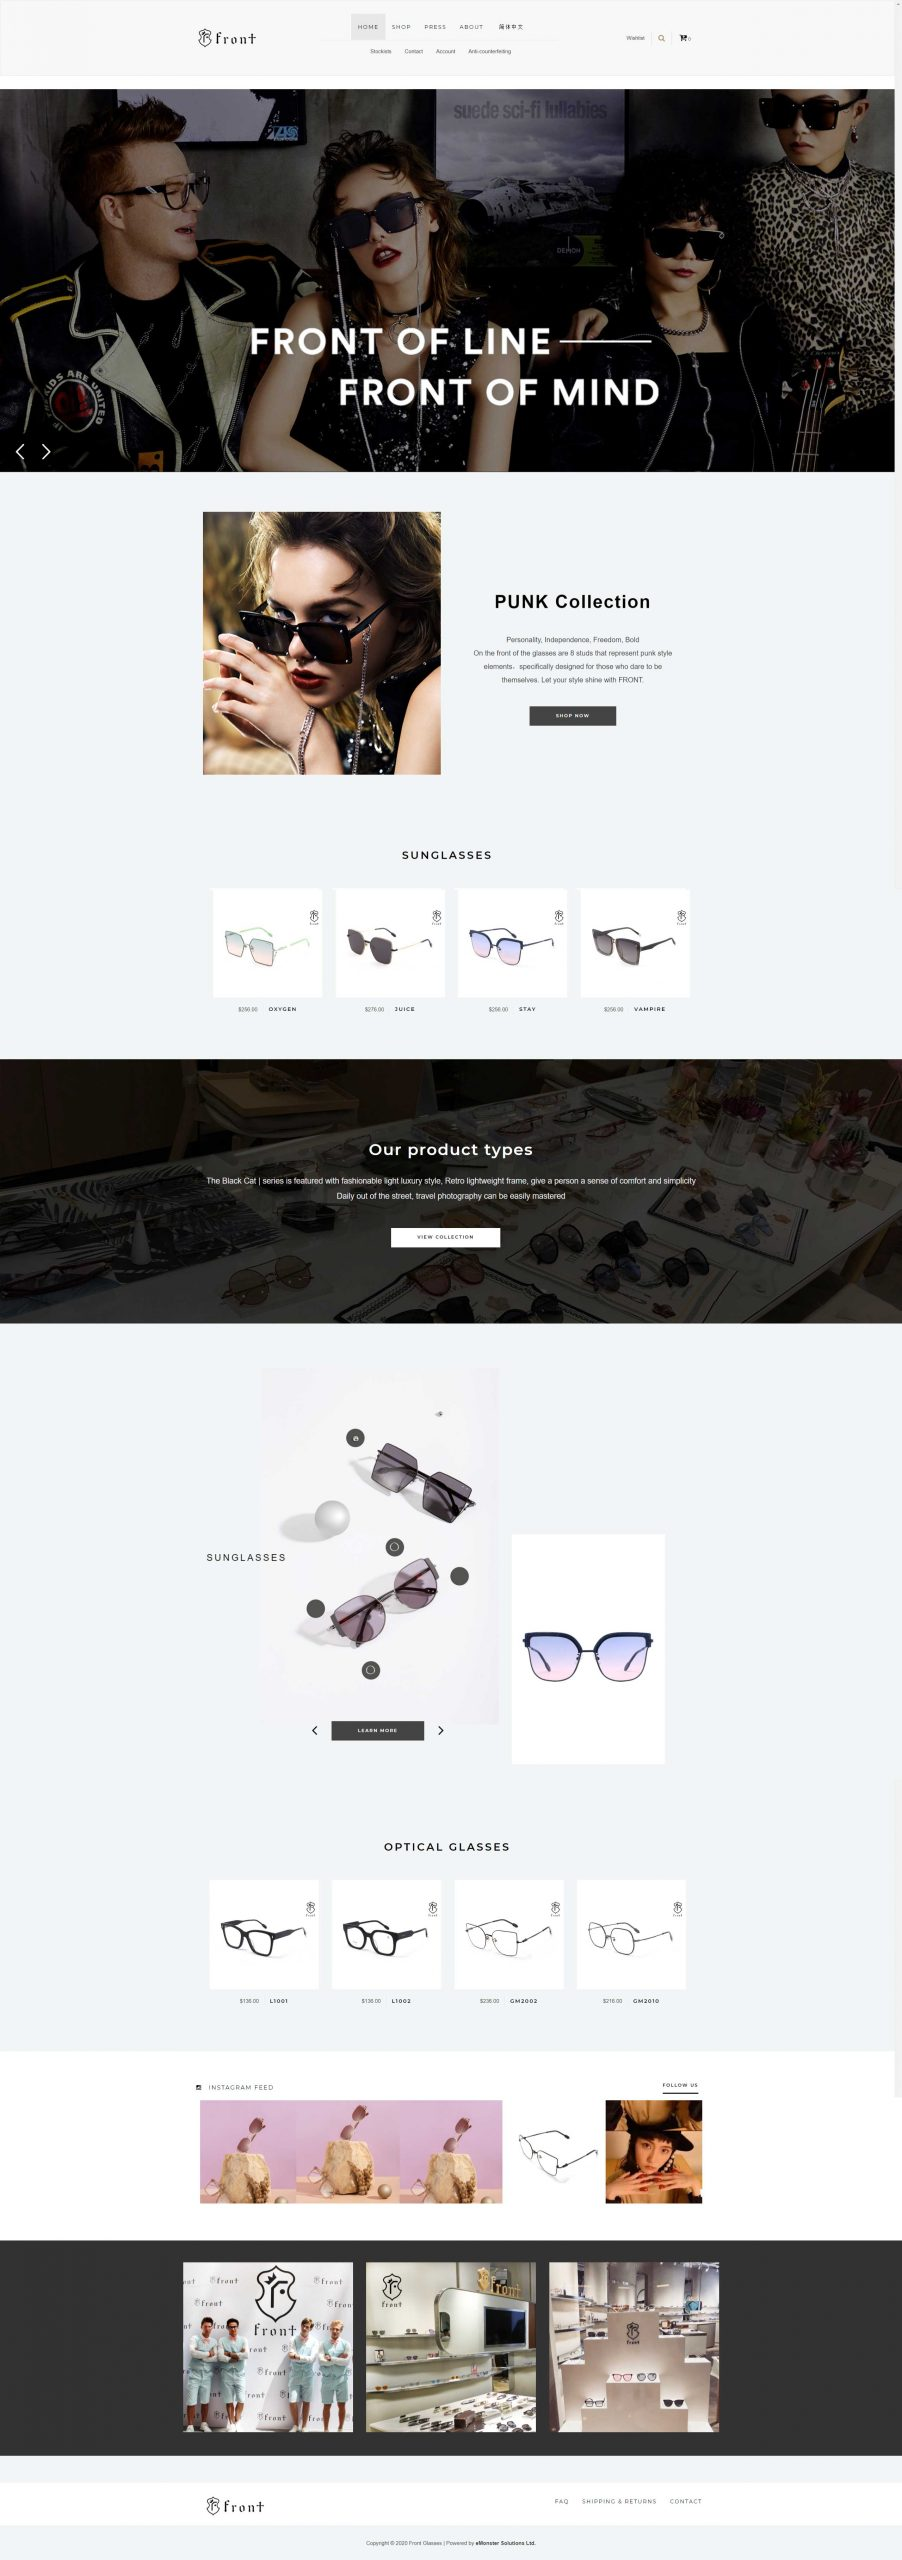 frontoffical_glasses_online_shop